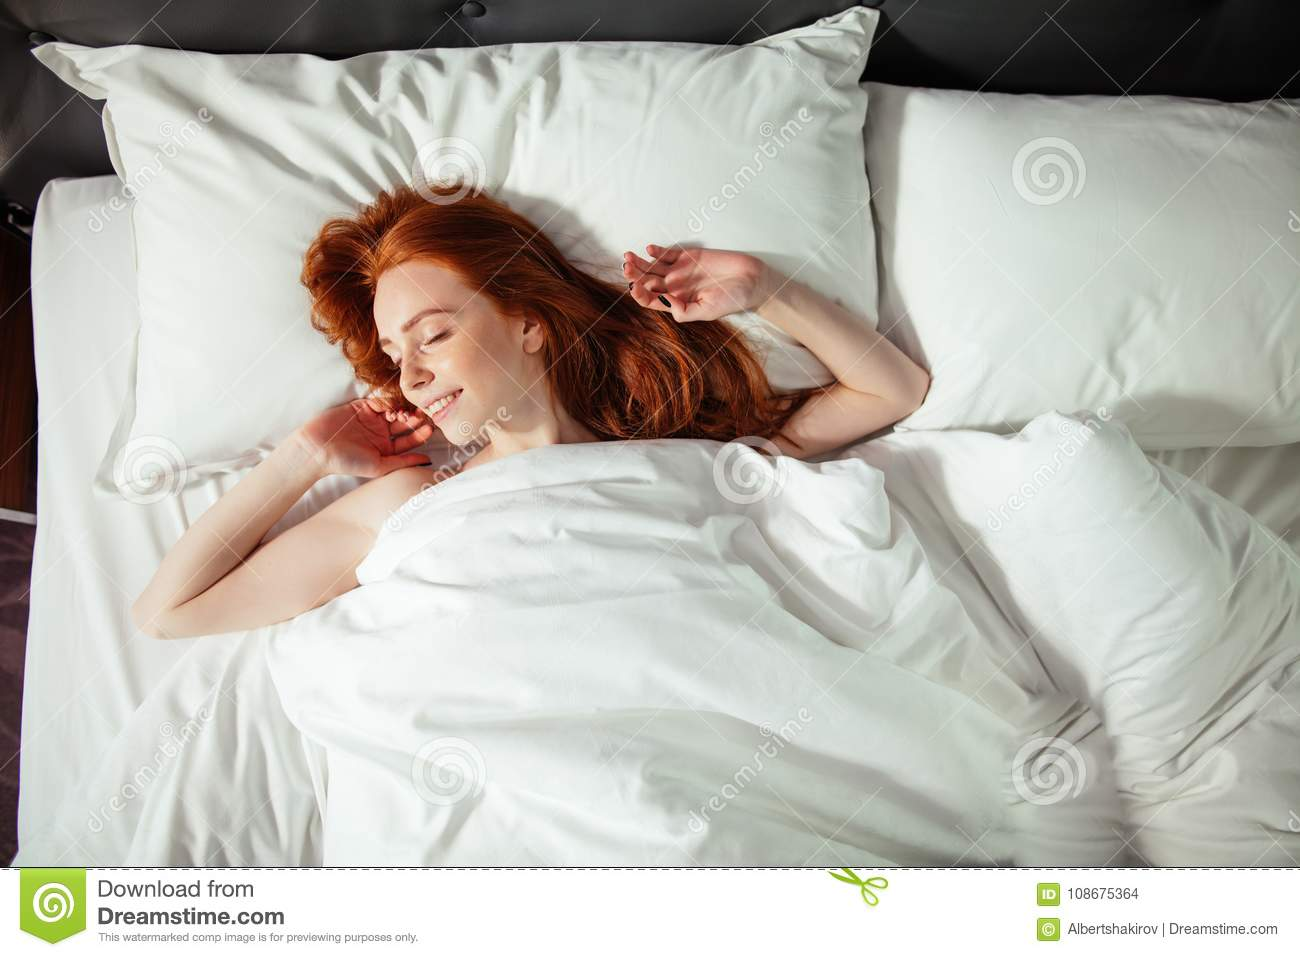 Sleeping young woman lies in bed with eyes closed. top view